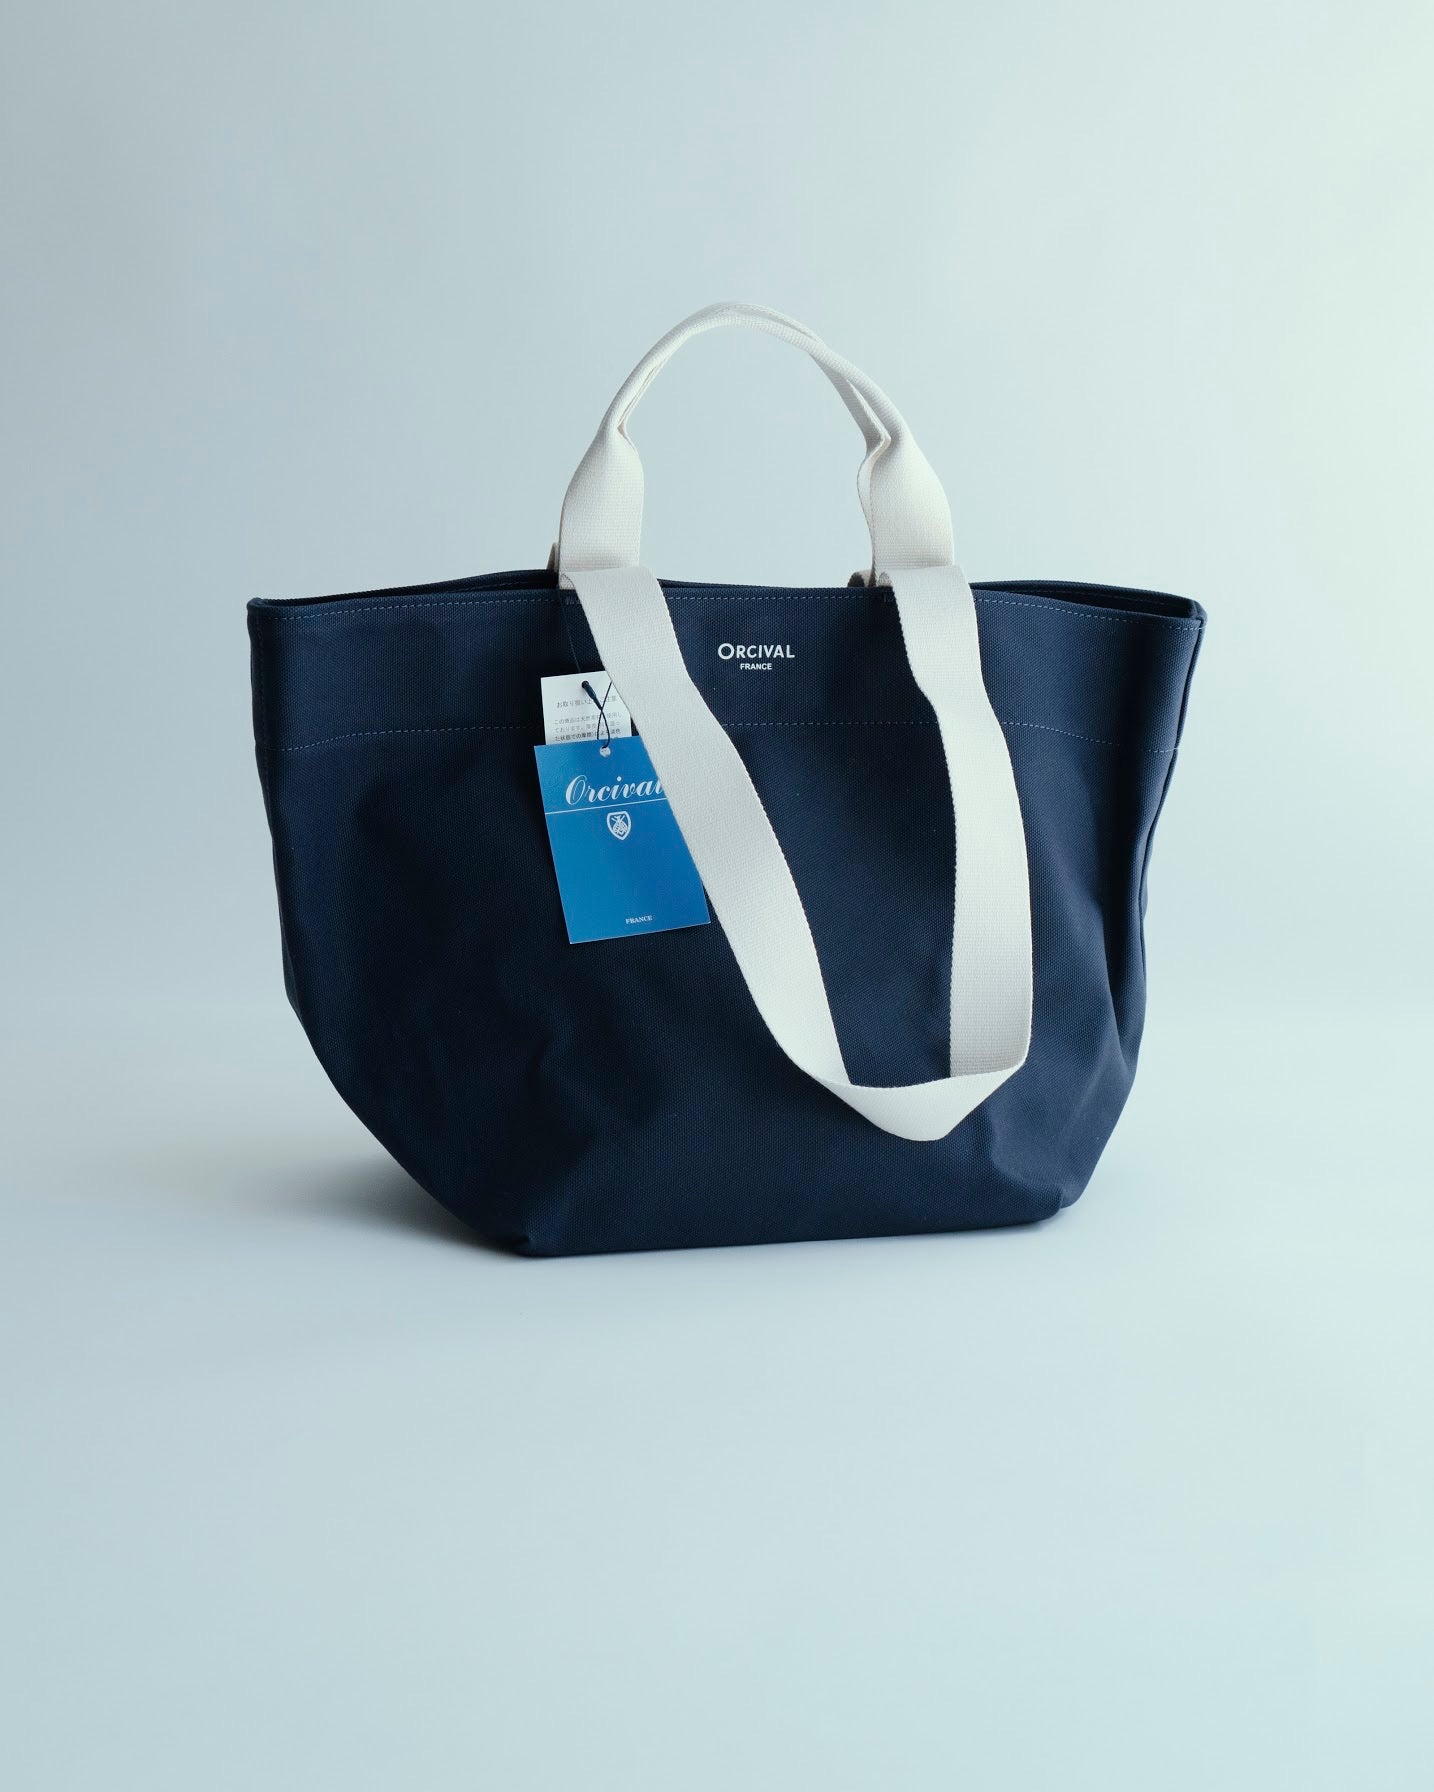 Light Canvas Bag | RC7185 LCV, Orcival - The Signet Store